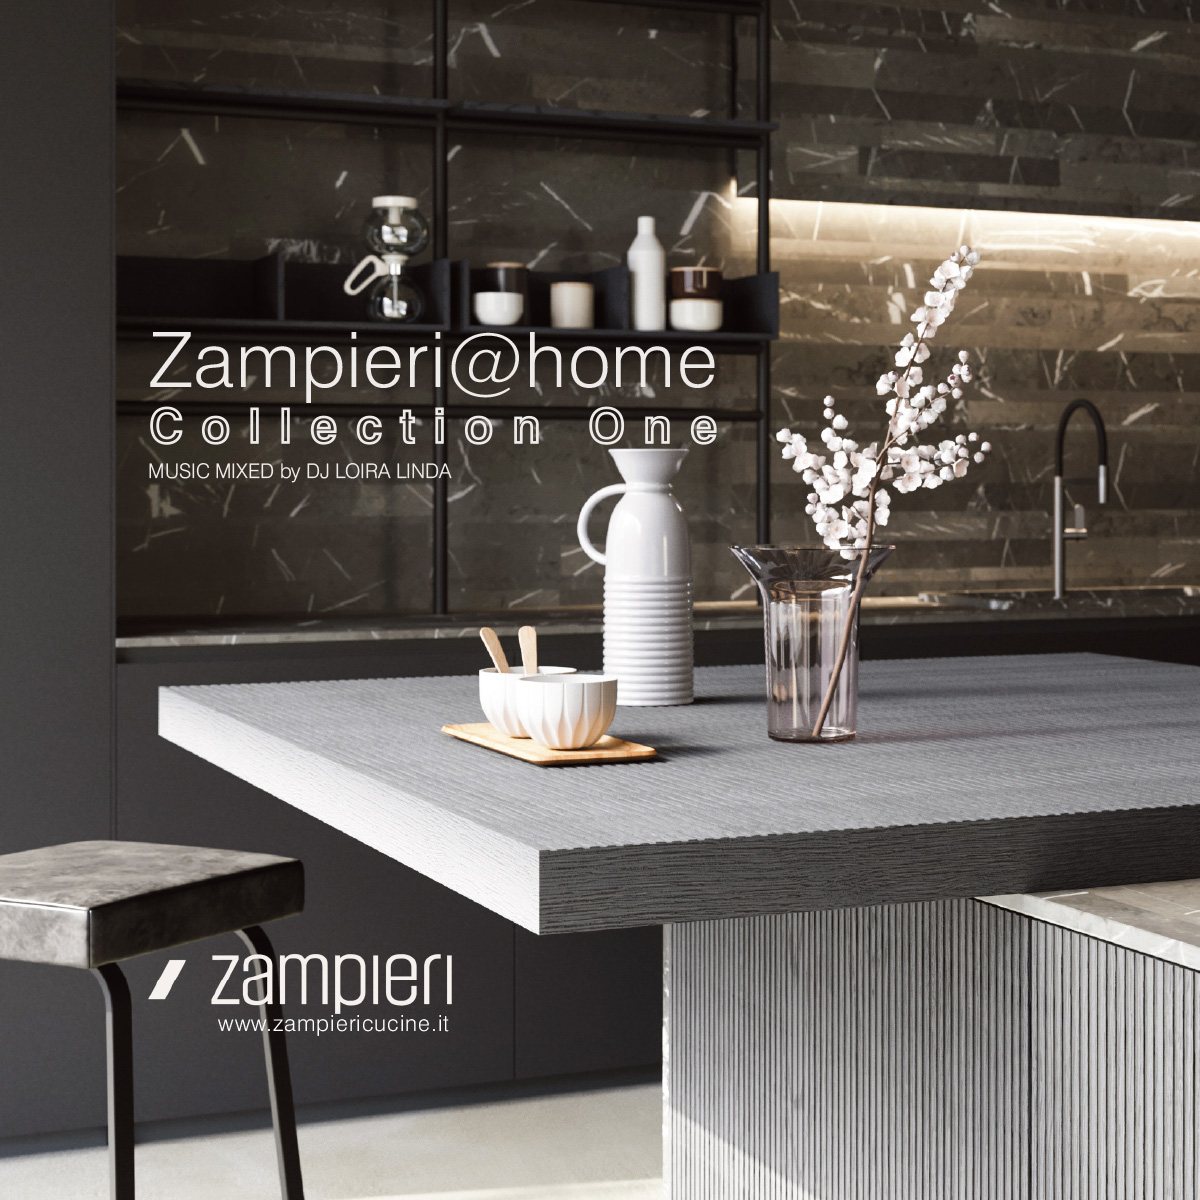 Zampieri@home Collection One on Spotify